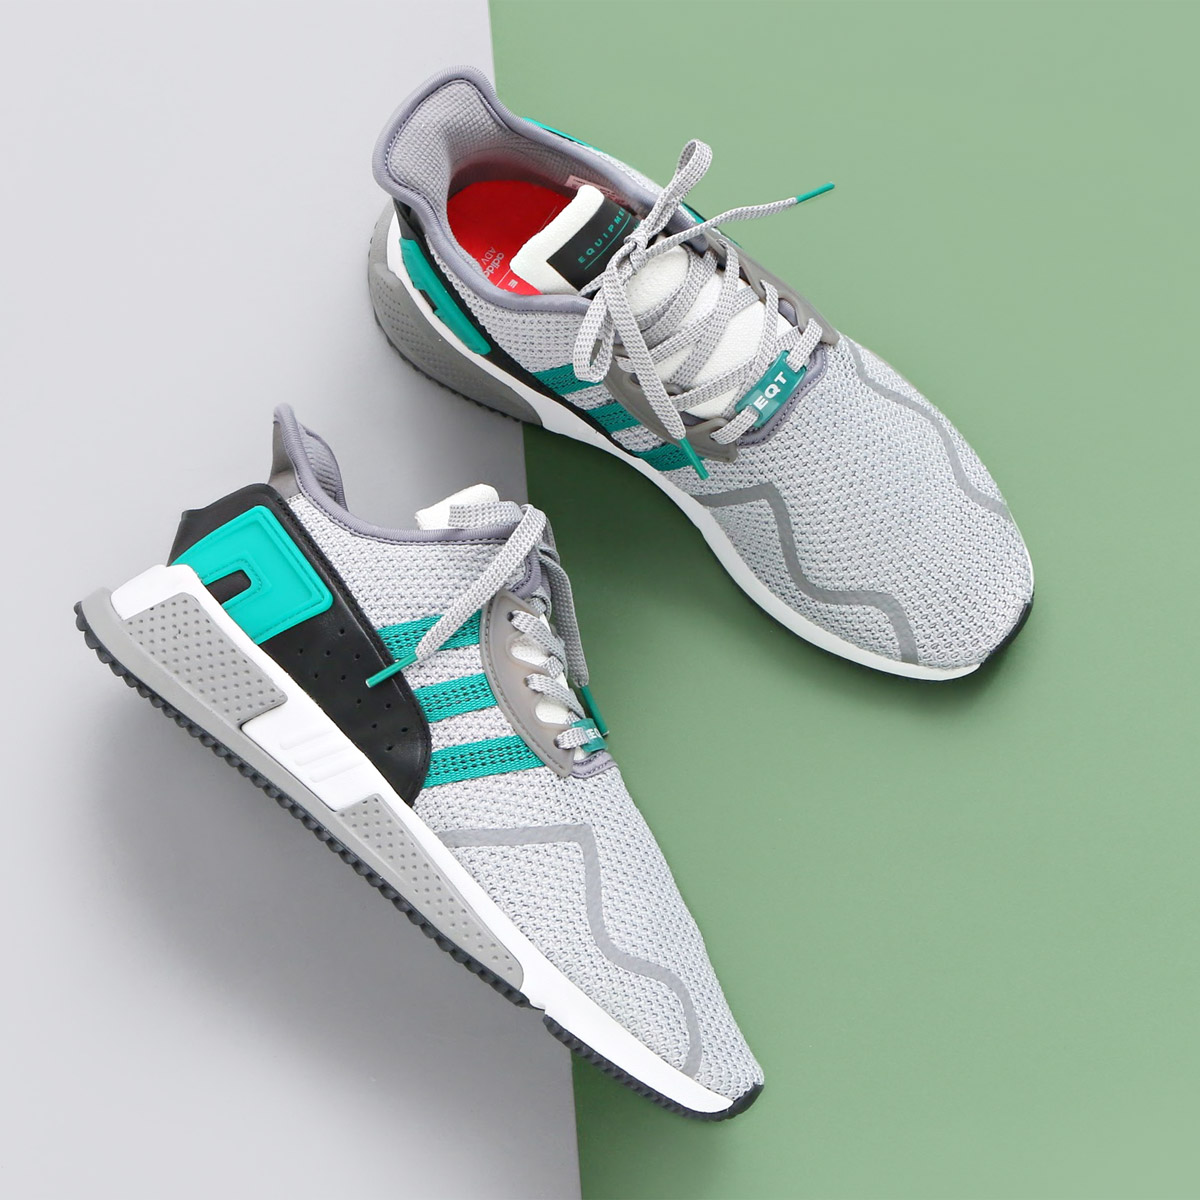 f454dafe69bf8d adidas Originals EQT CUSHION ADV (Adidas originals E cue tea cushion ADV)Grey    Sub Green   Running White 18SP-I